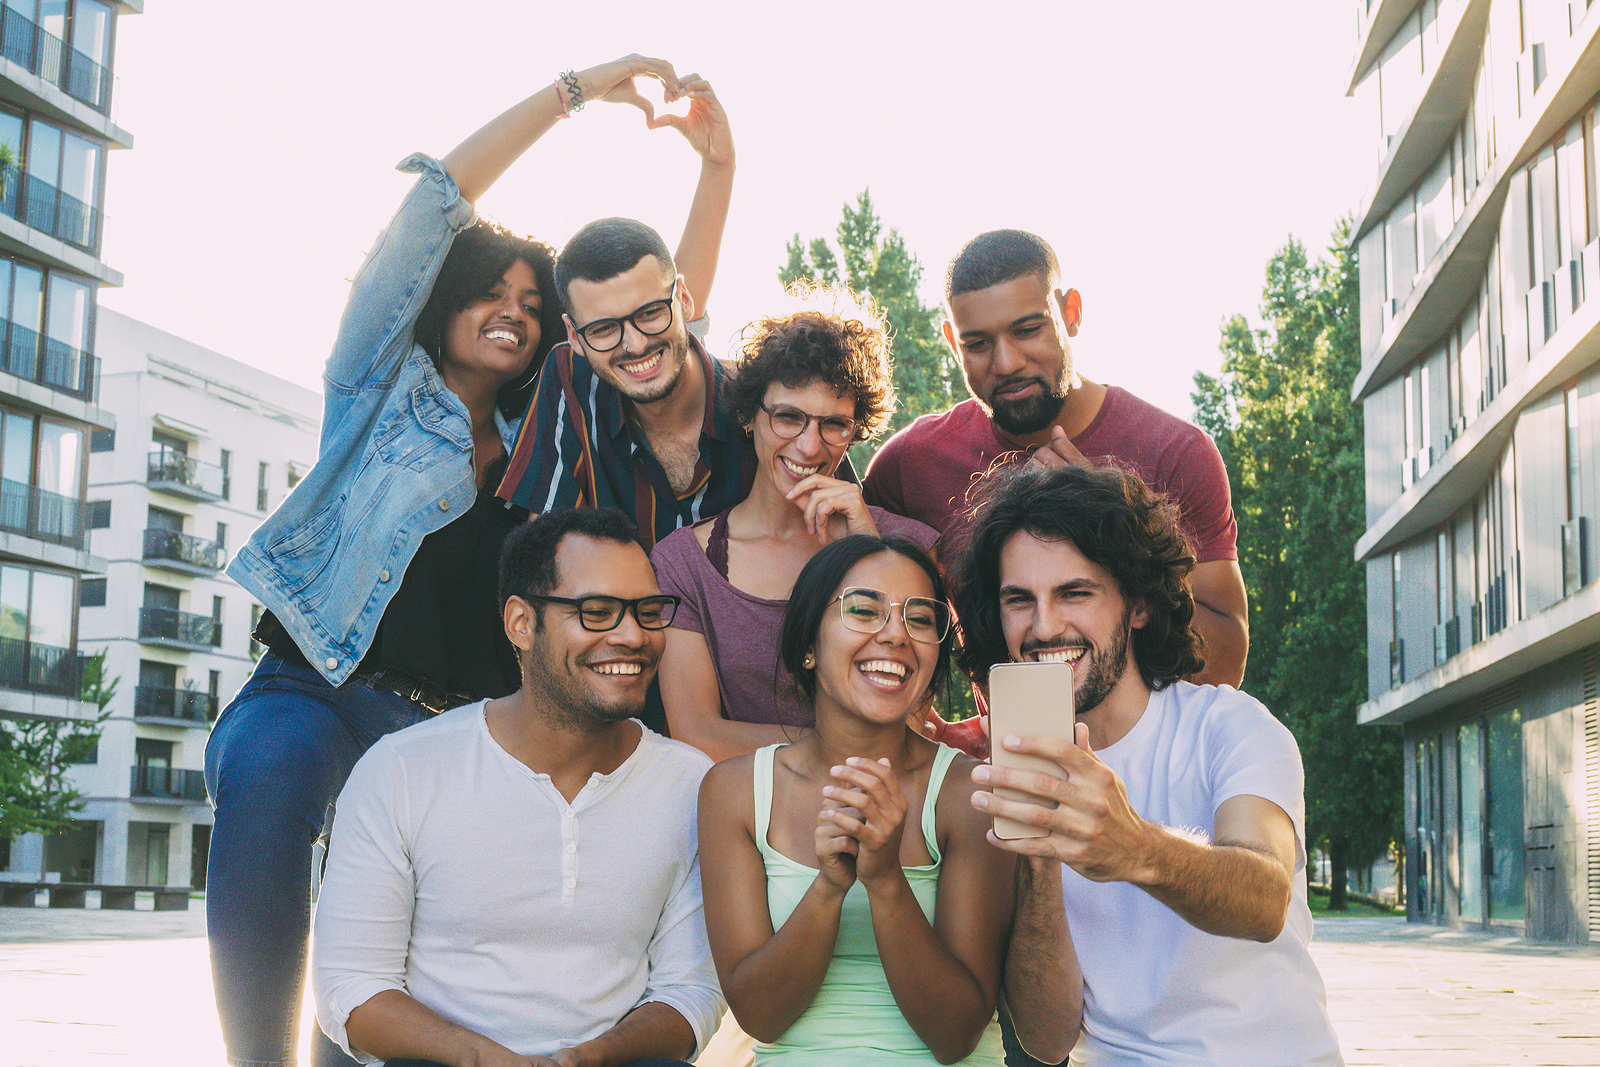 Photo of a group of multi ethnic attractive men and women grouped together trying to take a selfie. Someone made hearts with their hands, they are in a building area.